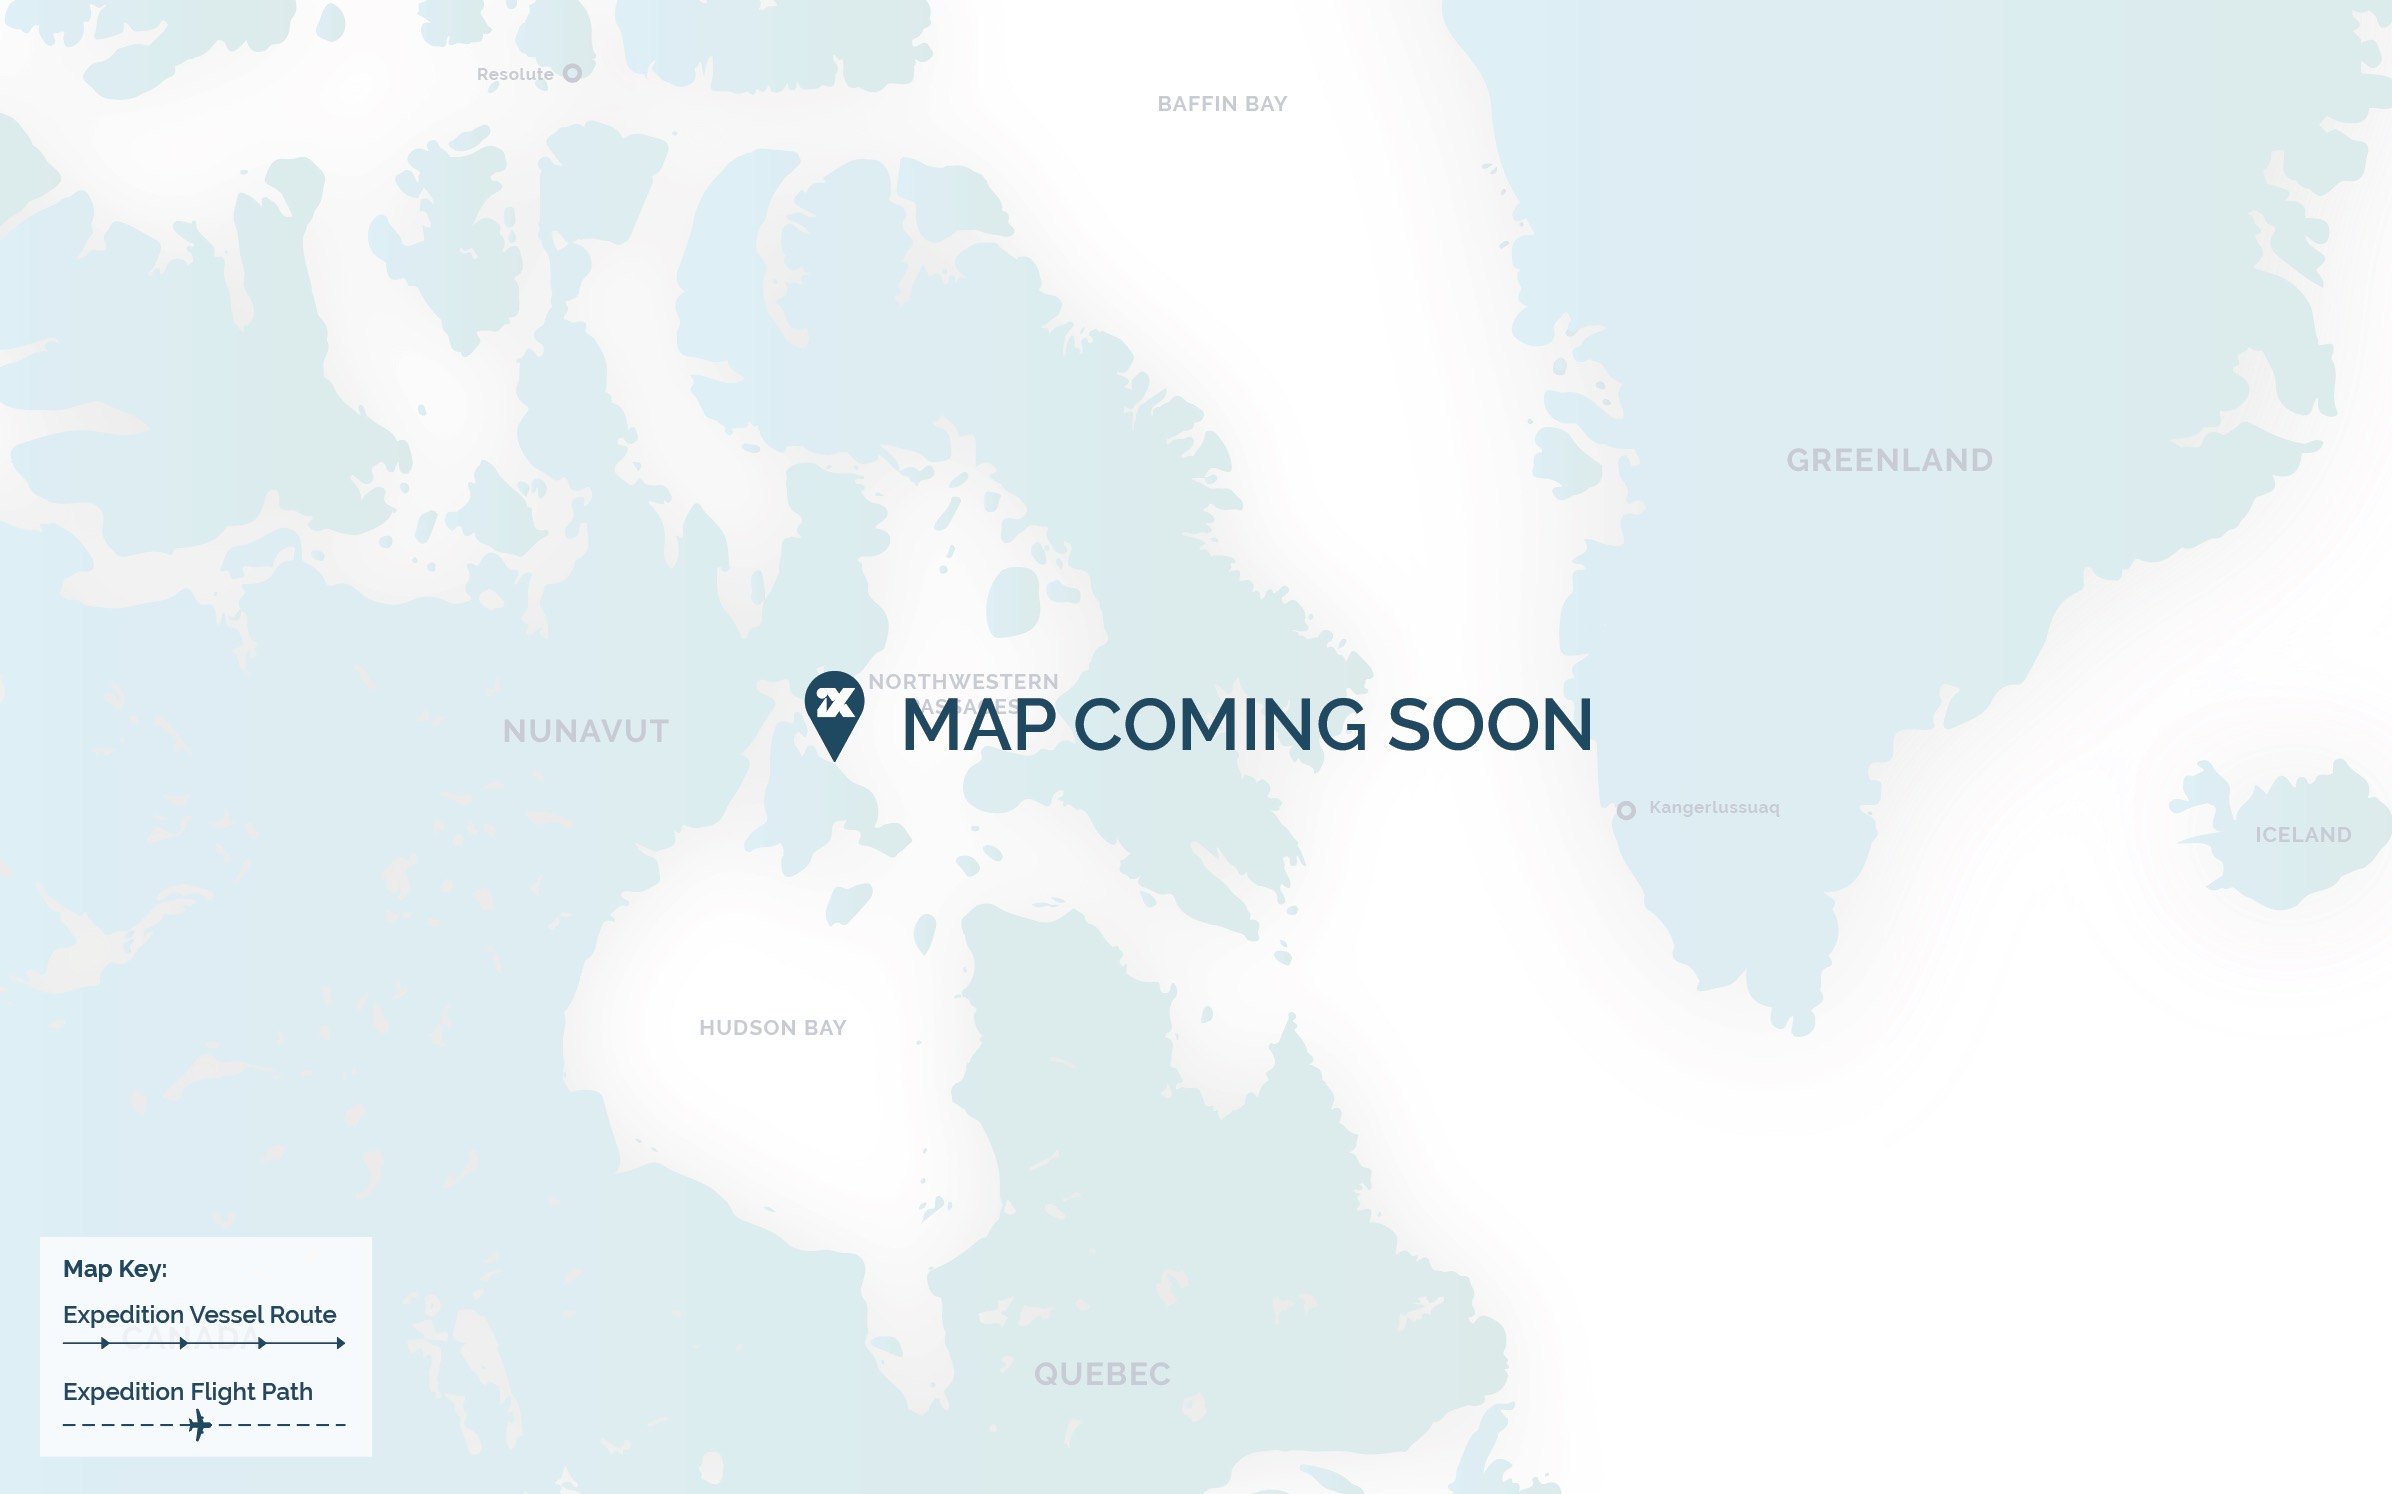 Map coming soon